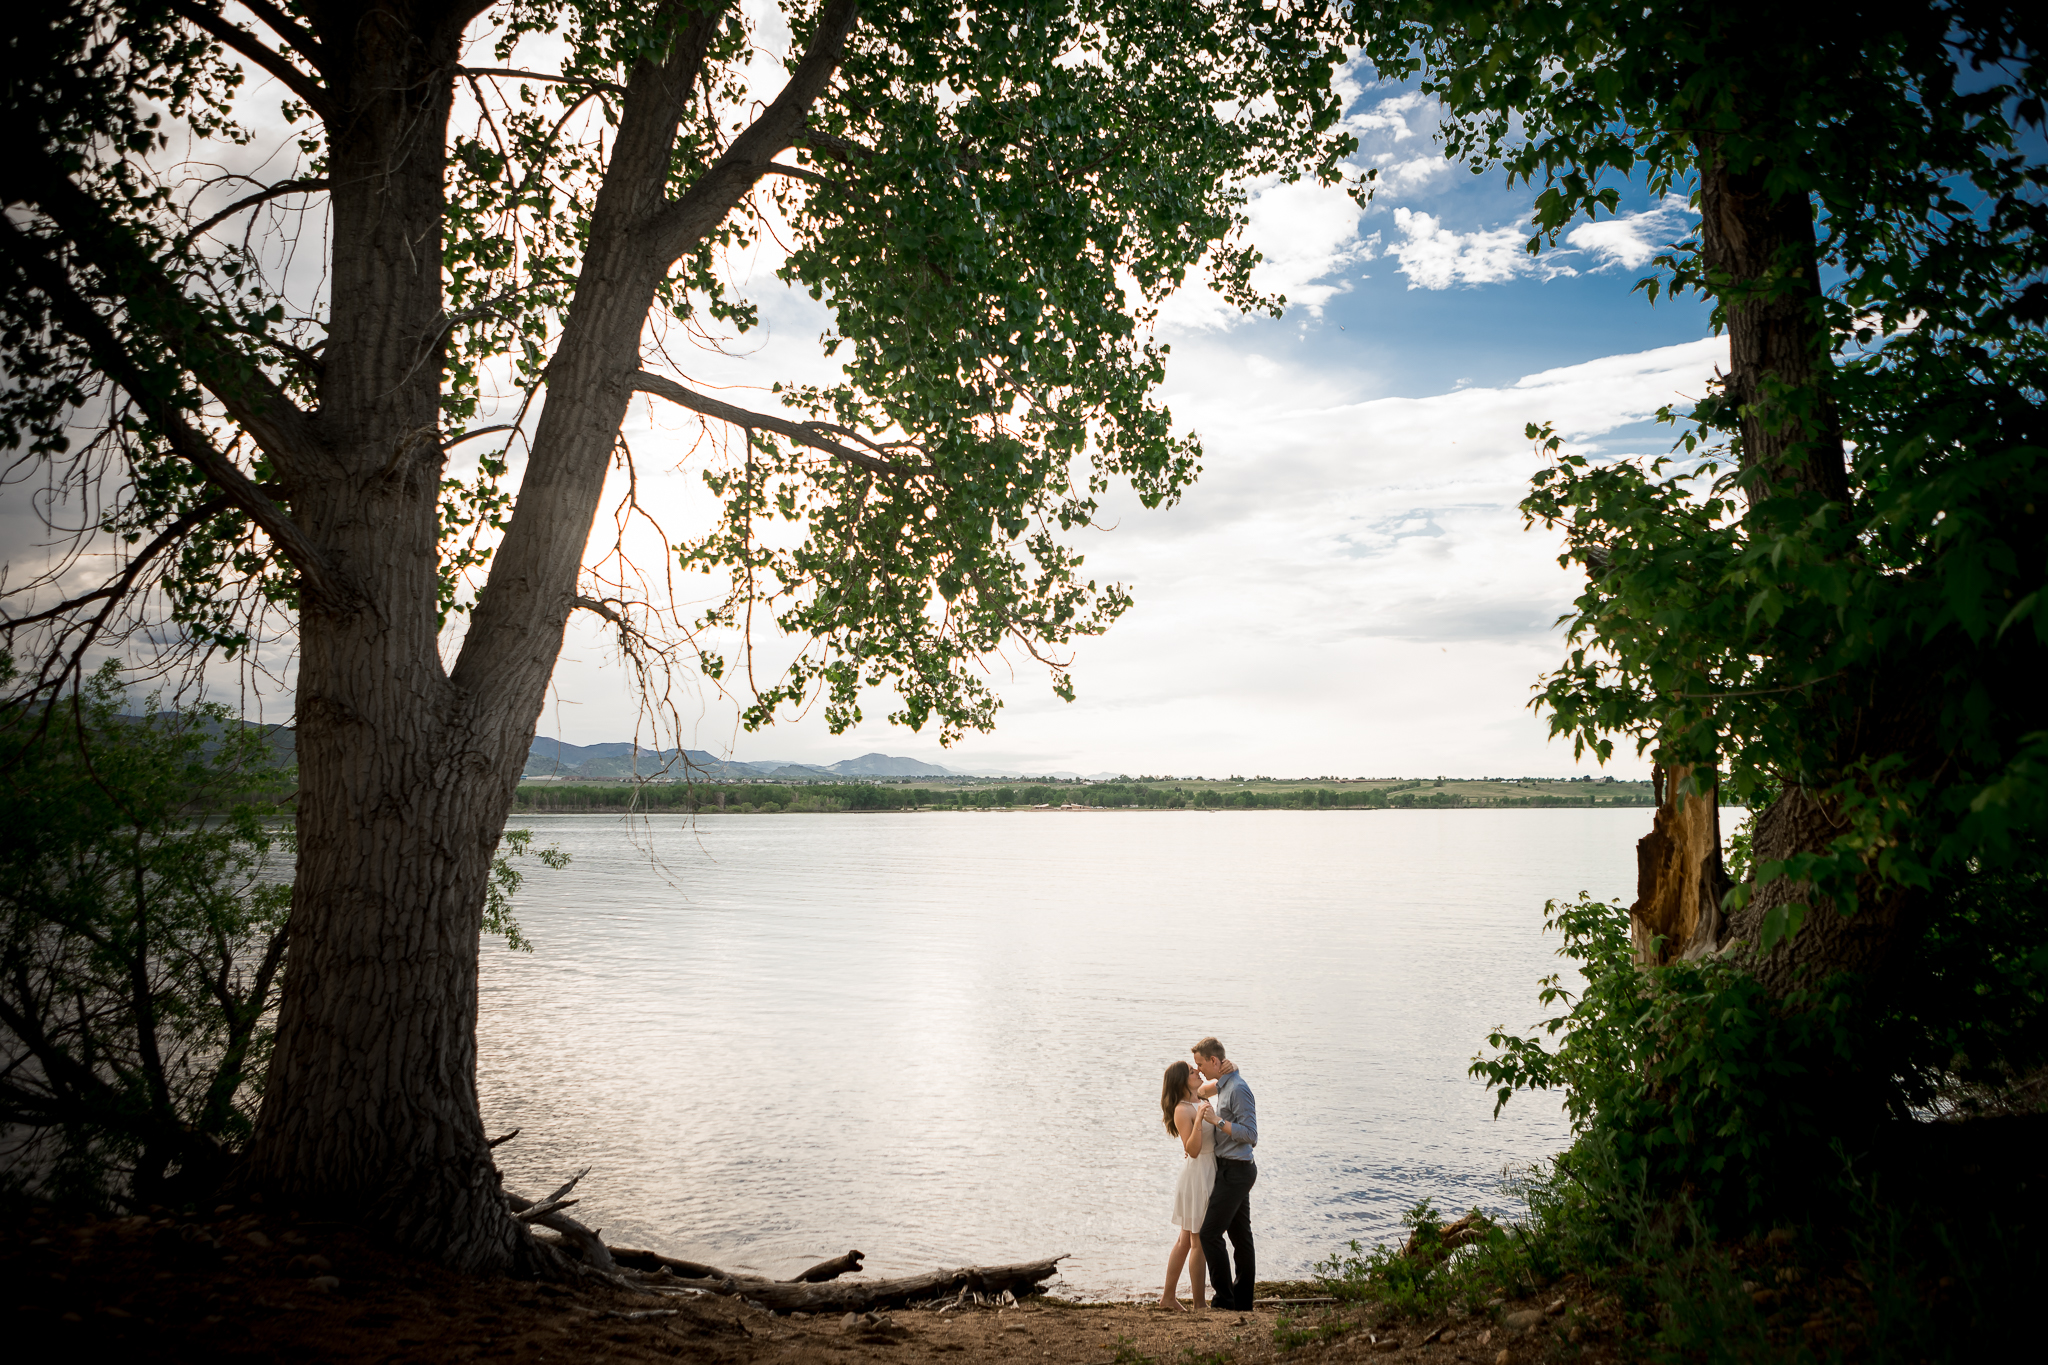 This secluded spot by the water was Alex's choice for a surprise proposal a few months ago. It only seemed fitting to return here for their engagement session.